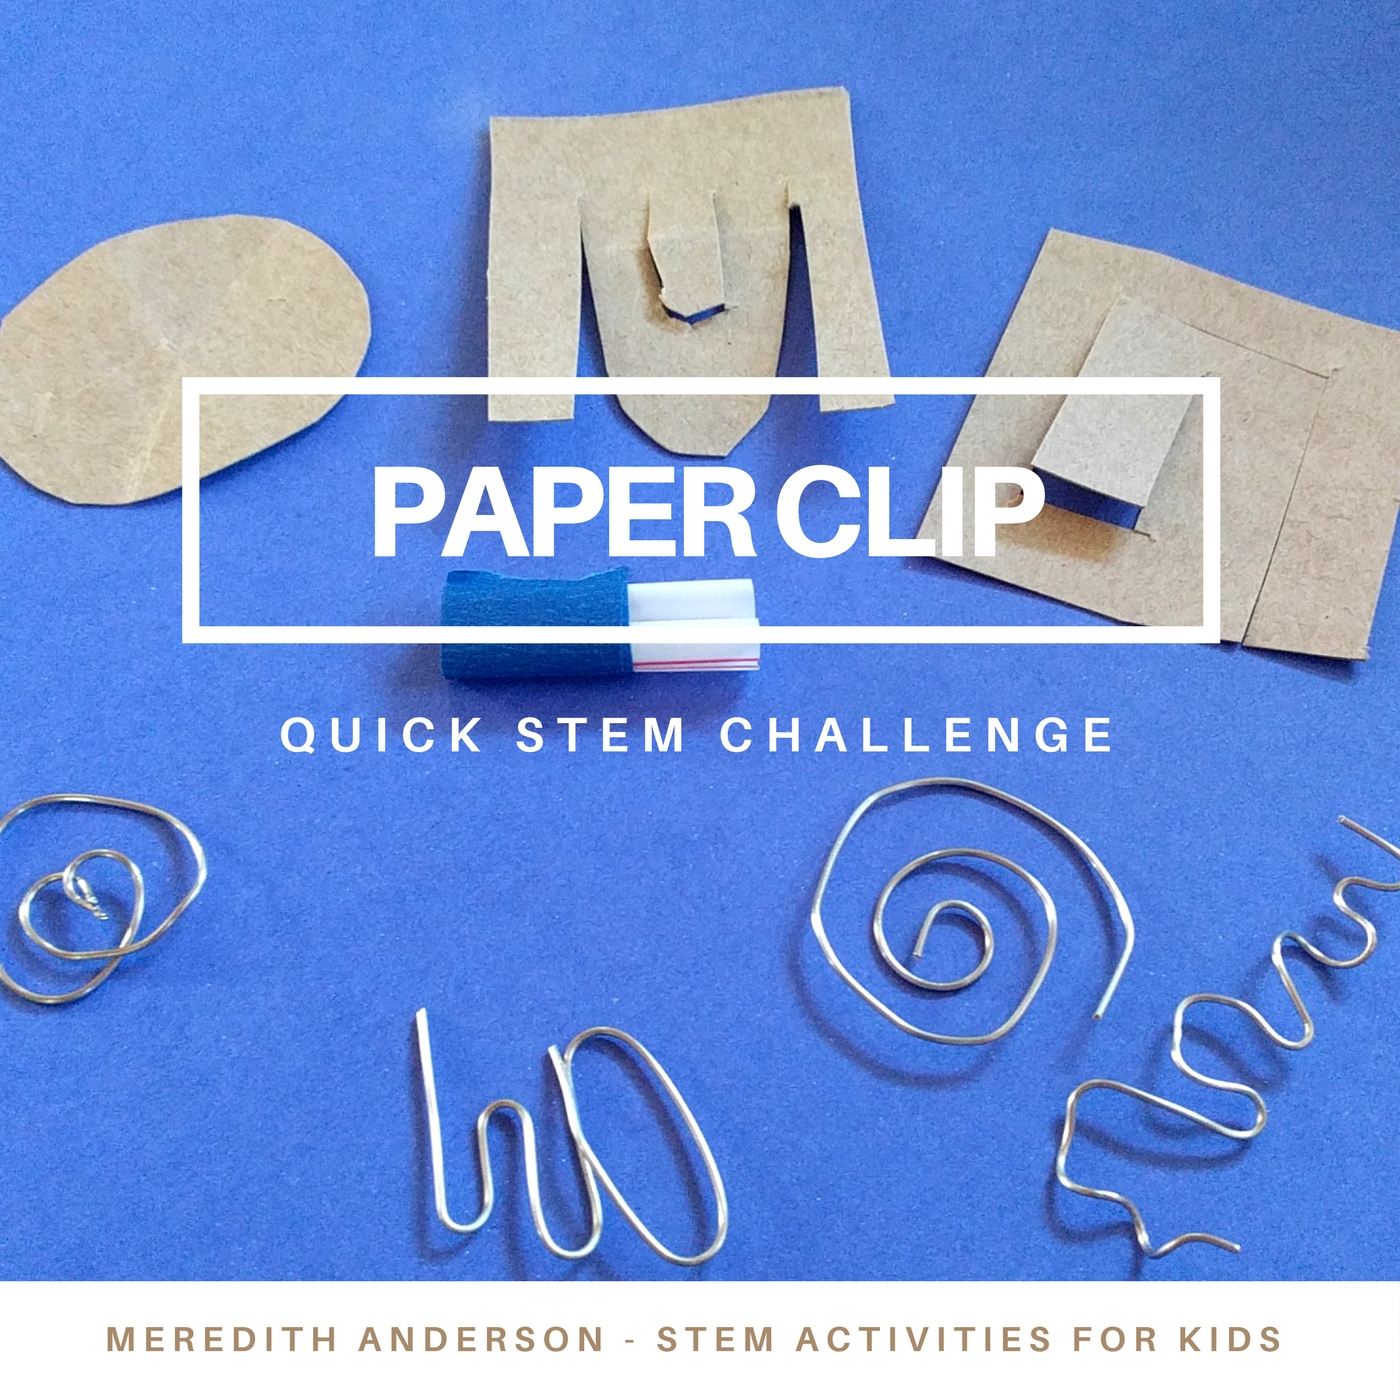 Quick STEM Challenge for Kids – Engineer a New Paper Clip